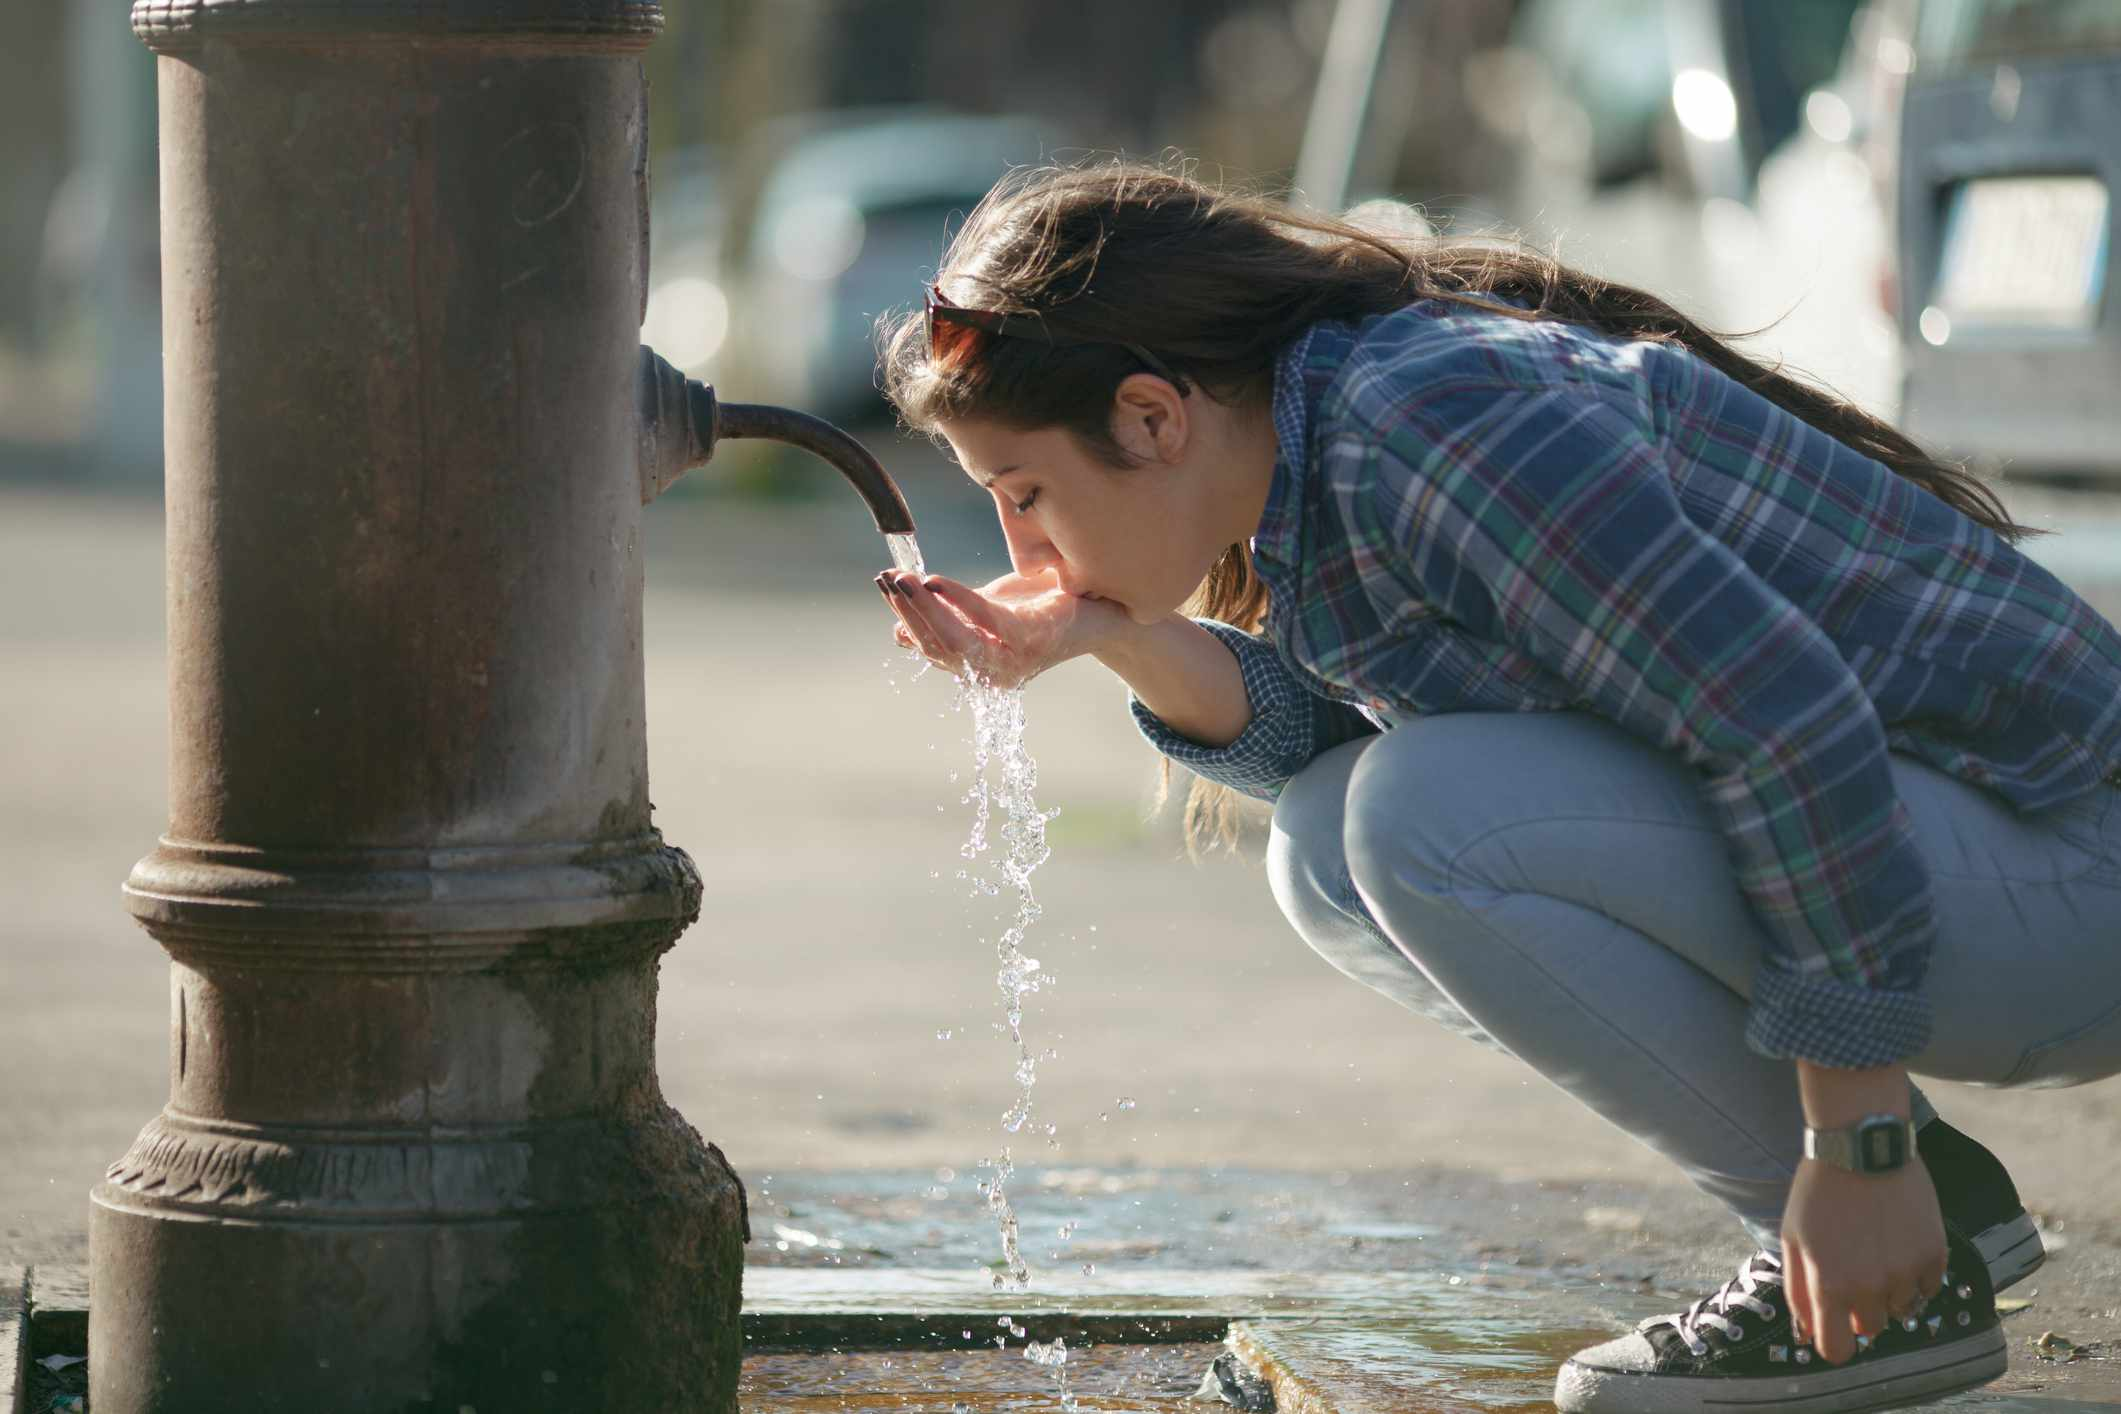 Young girl drinking water